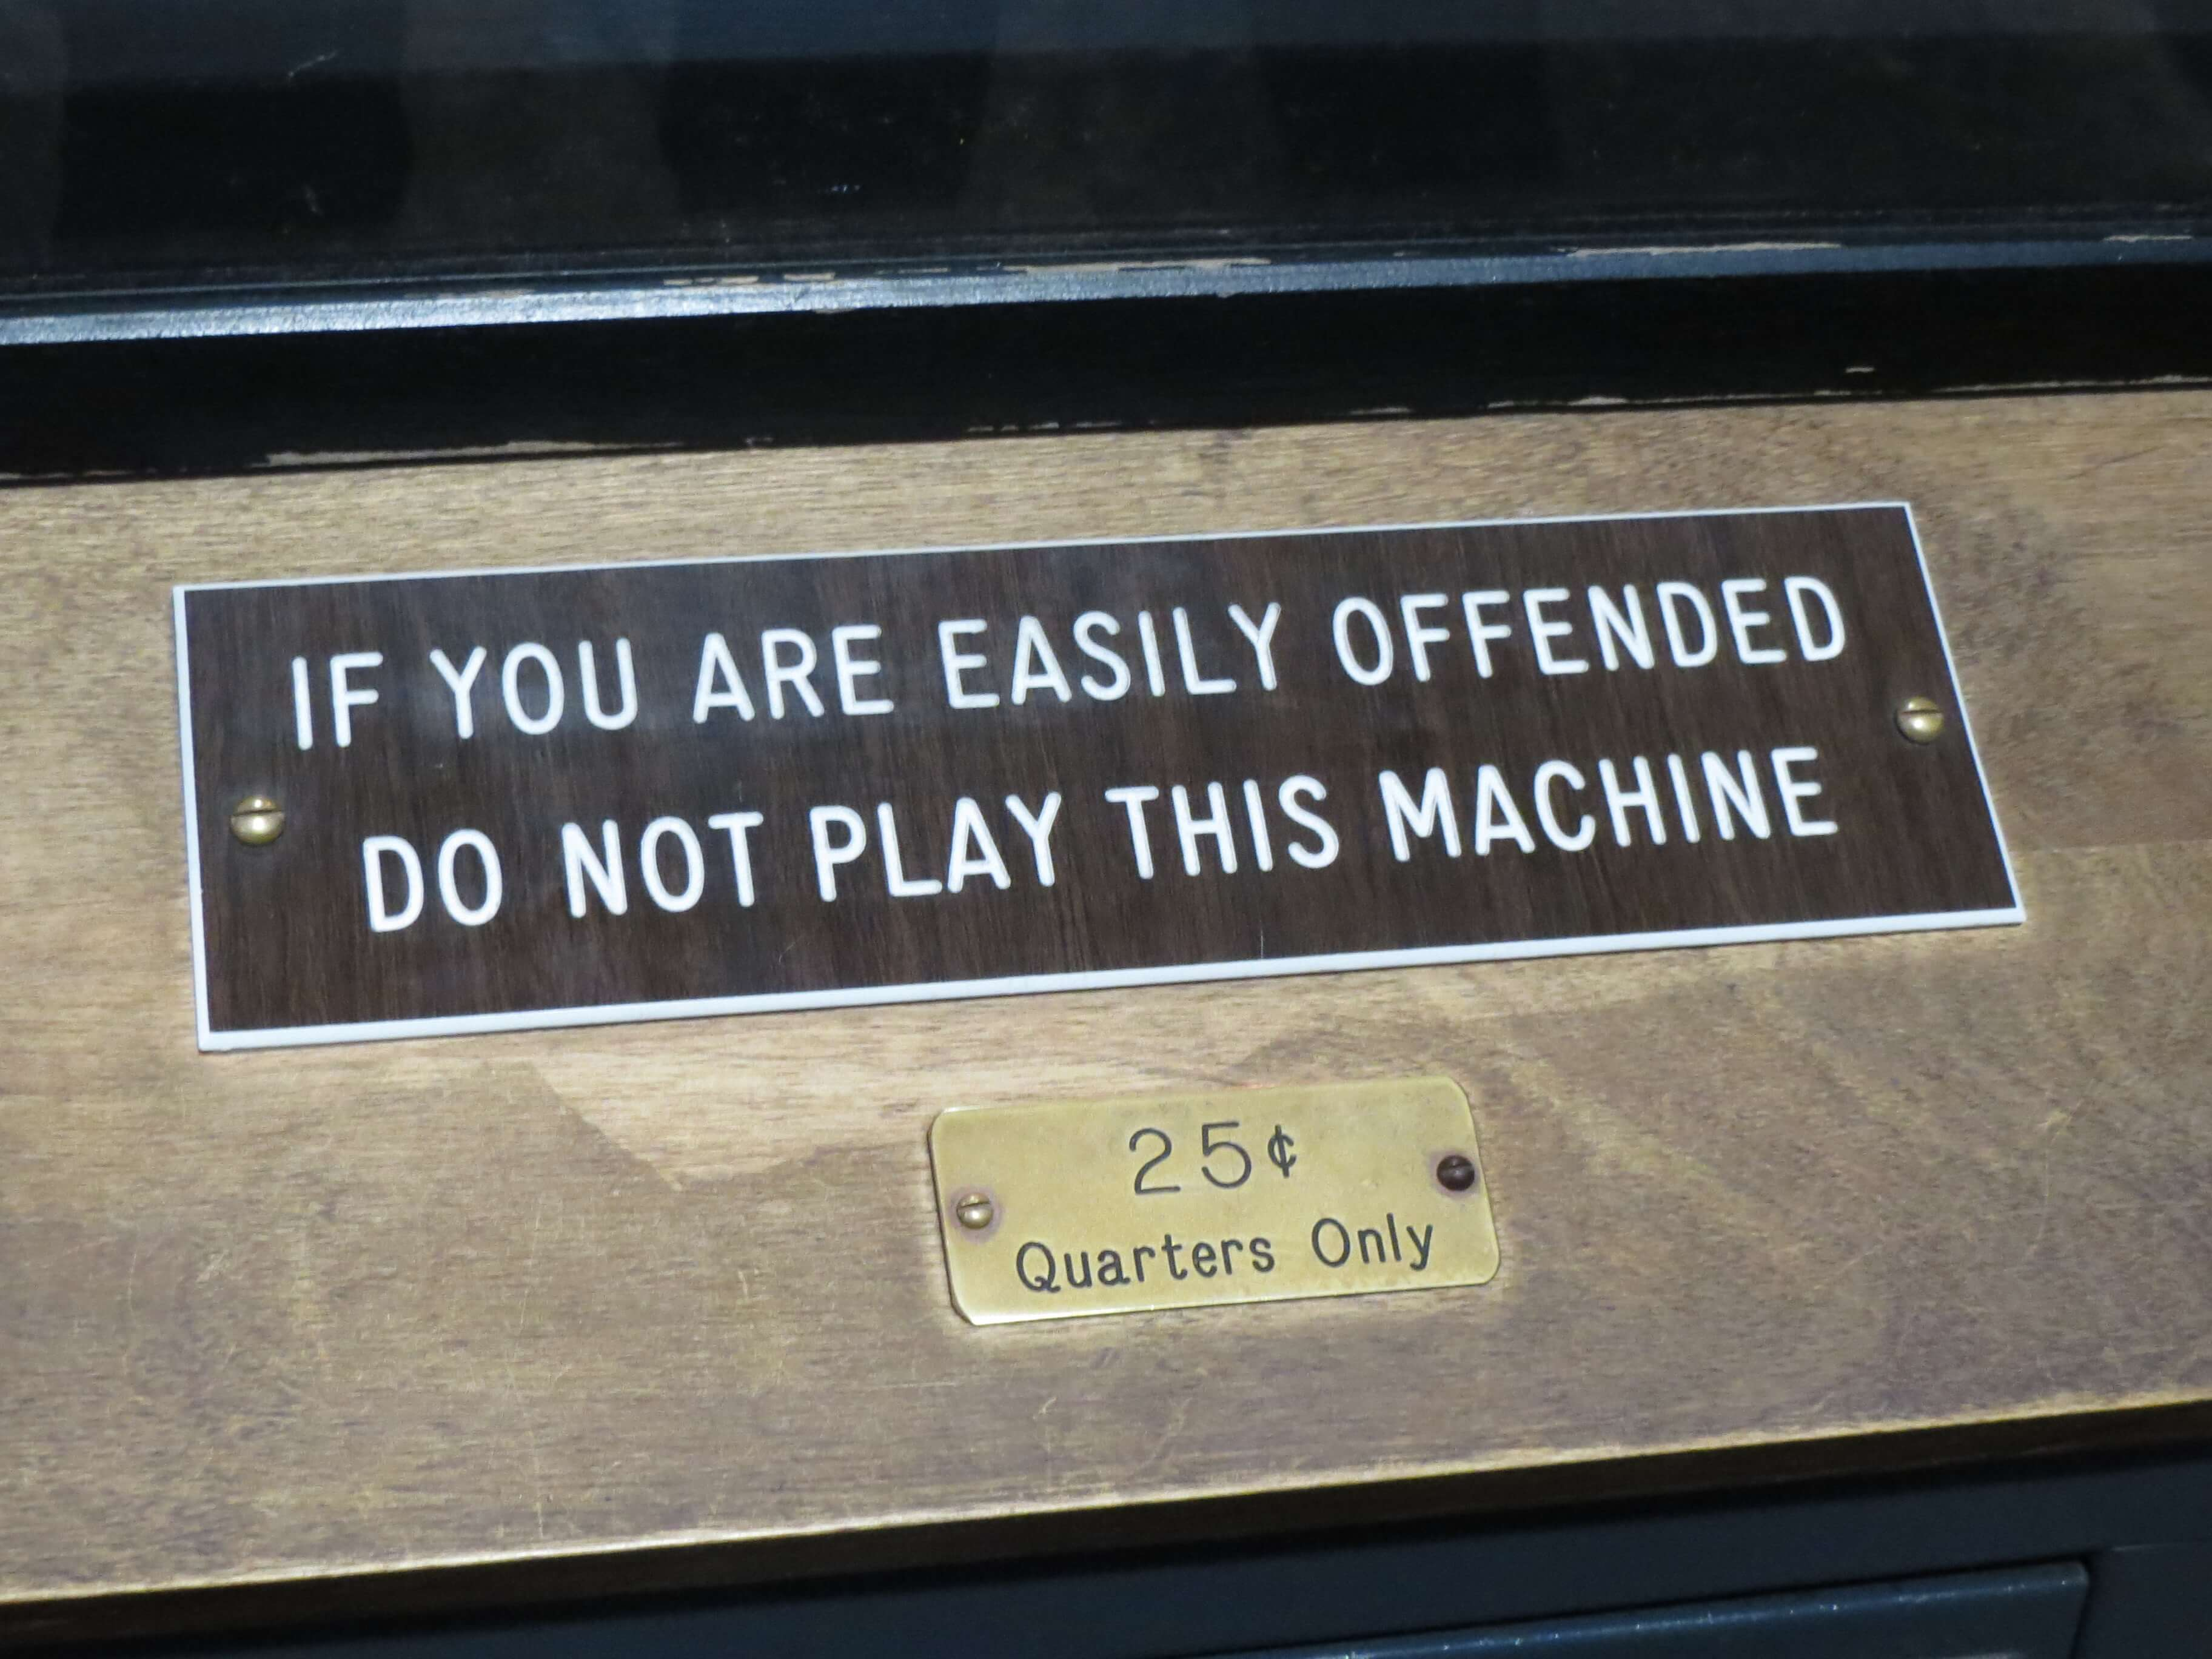 (CC BY 2.0) IF YOU ARE EASILY OFFENDED DO NOT PLAY THIS MACHINE, Musee Mecanique, https://www.flickr.com/photos/zombieite/20714734032